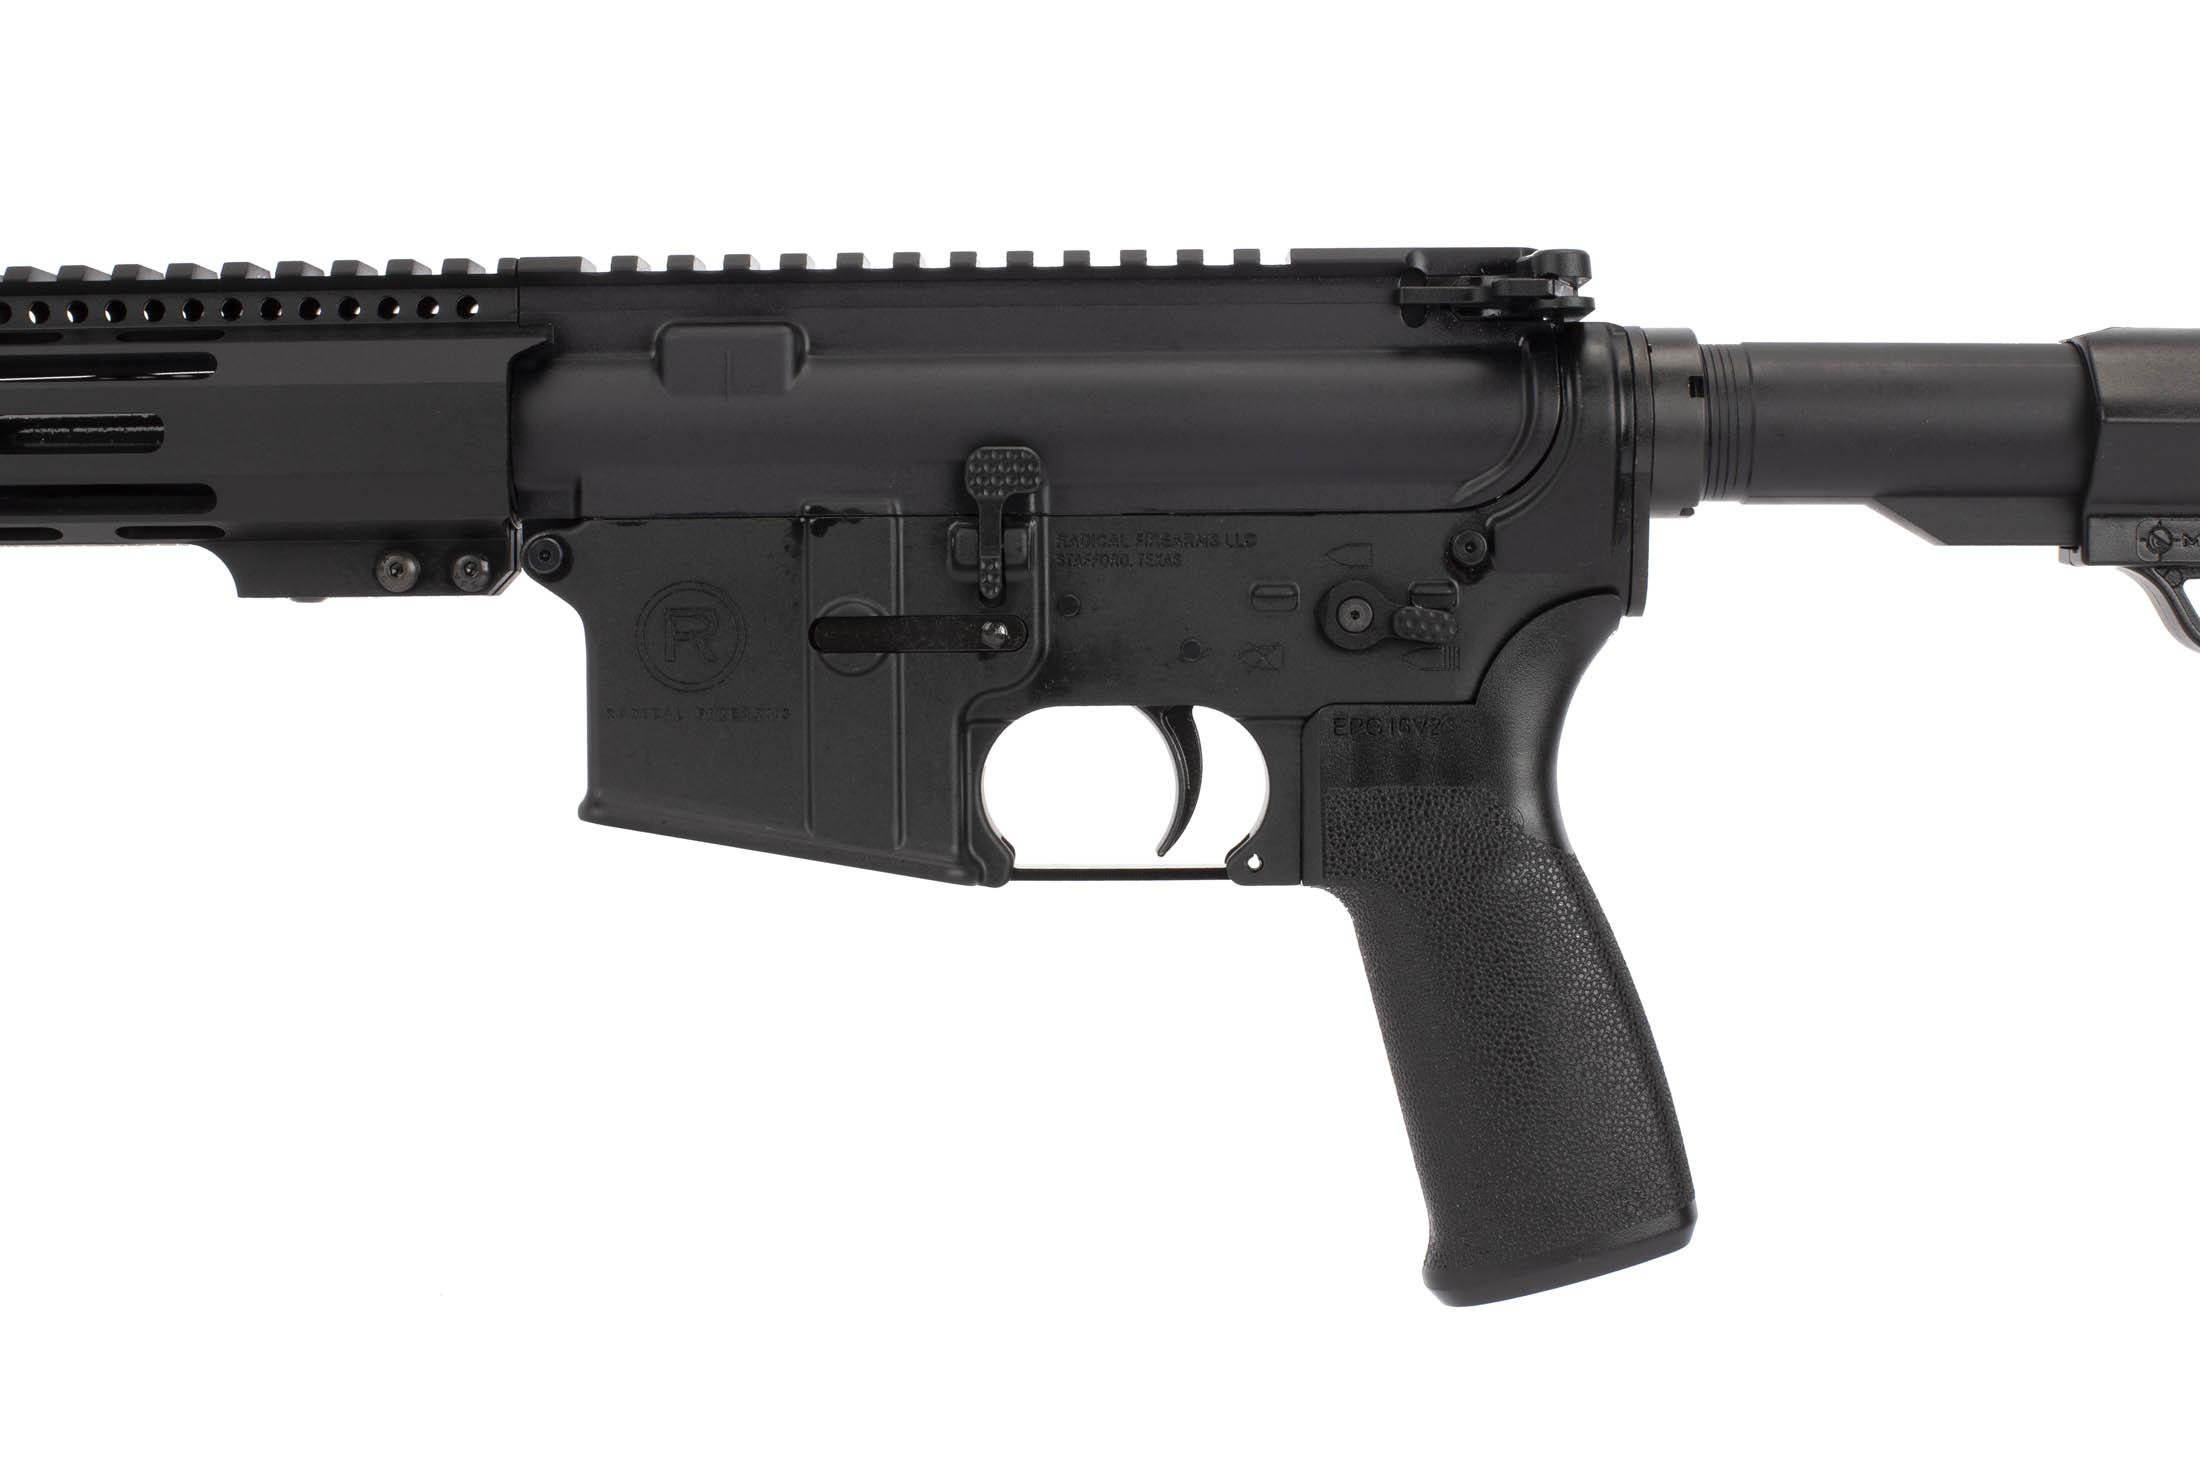 Radical Firearms 16in 300 BLK AR-15 rifle uses an enhanced bolt release and standard charging handle